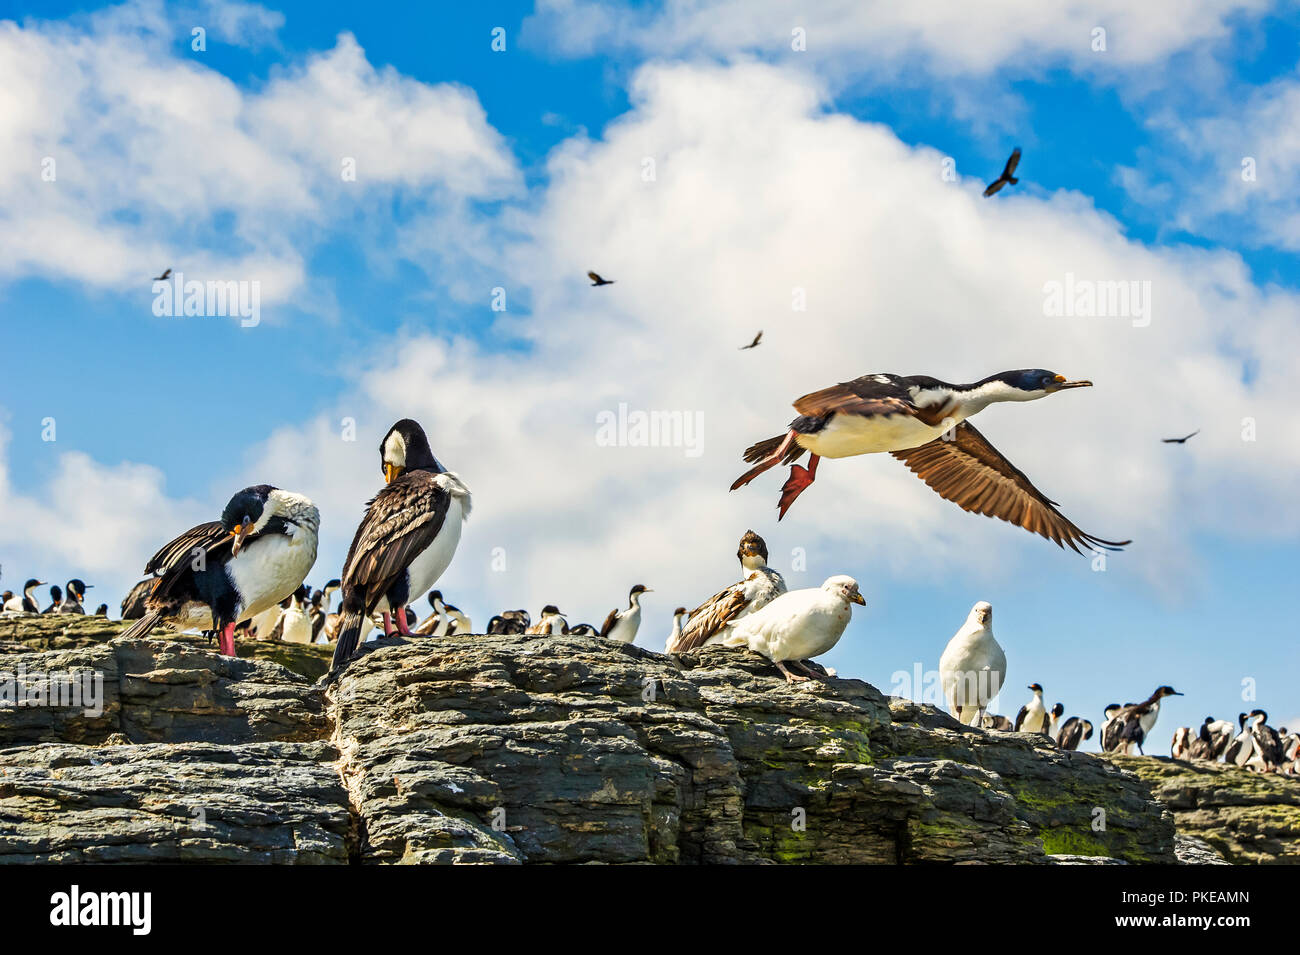 Imperial Shag (Leucocarbo atriceps) and a variety of other birds; Bleaker Island, Falkland Islands - Stock Image